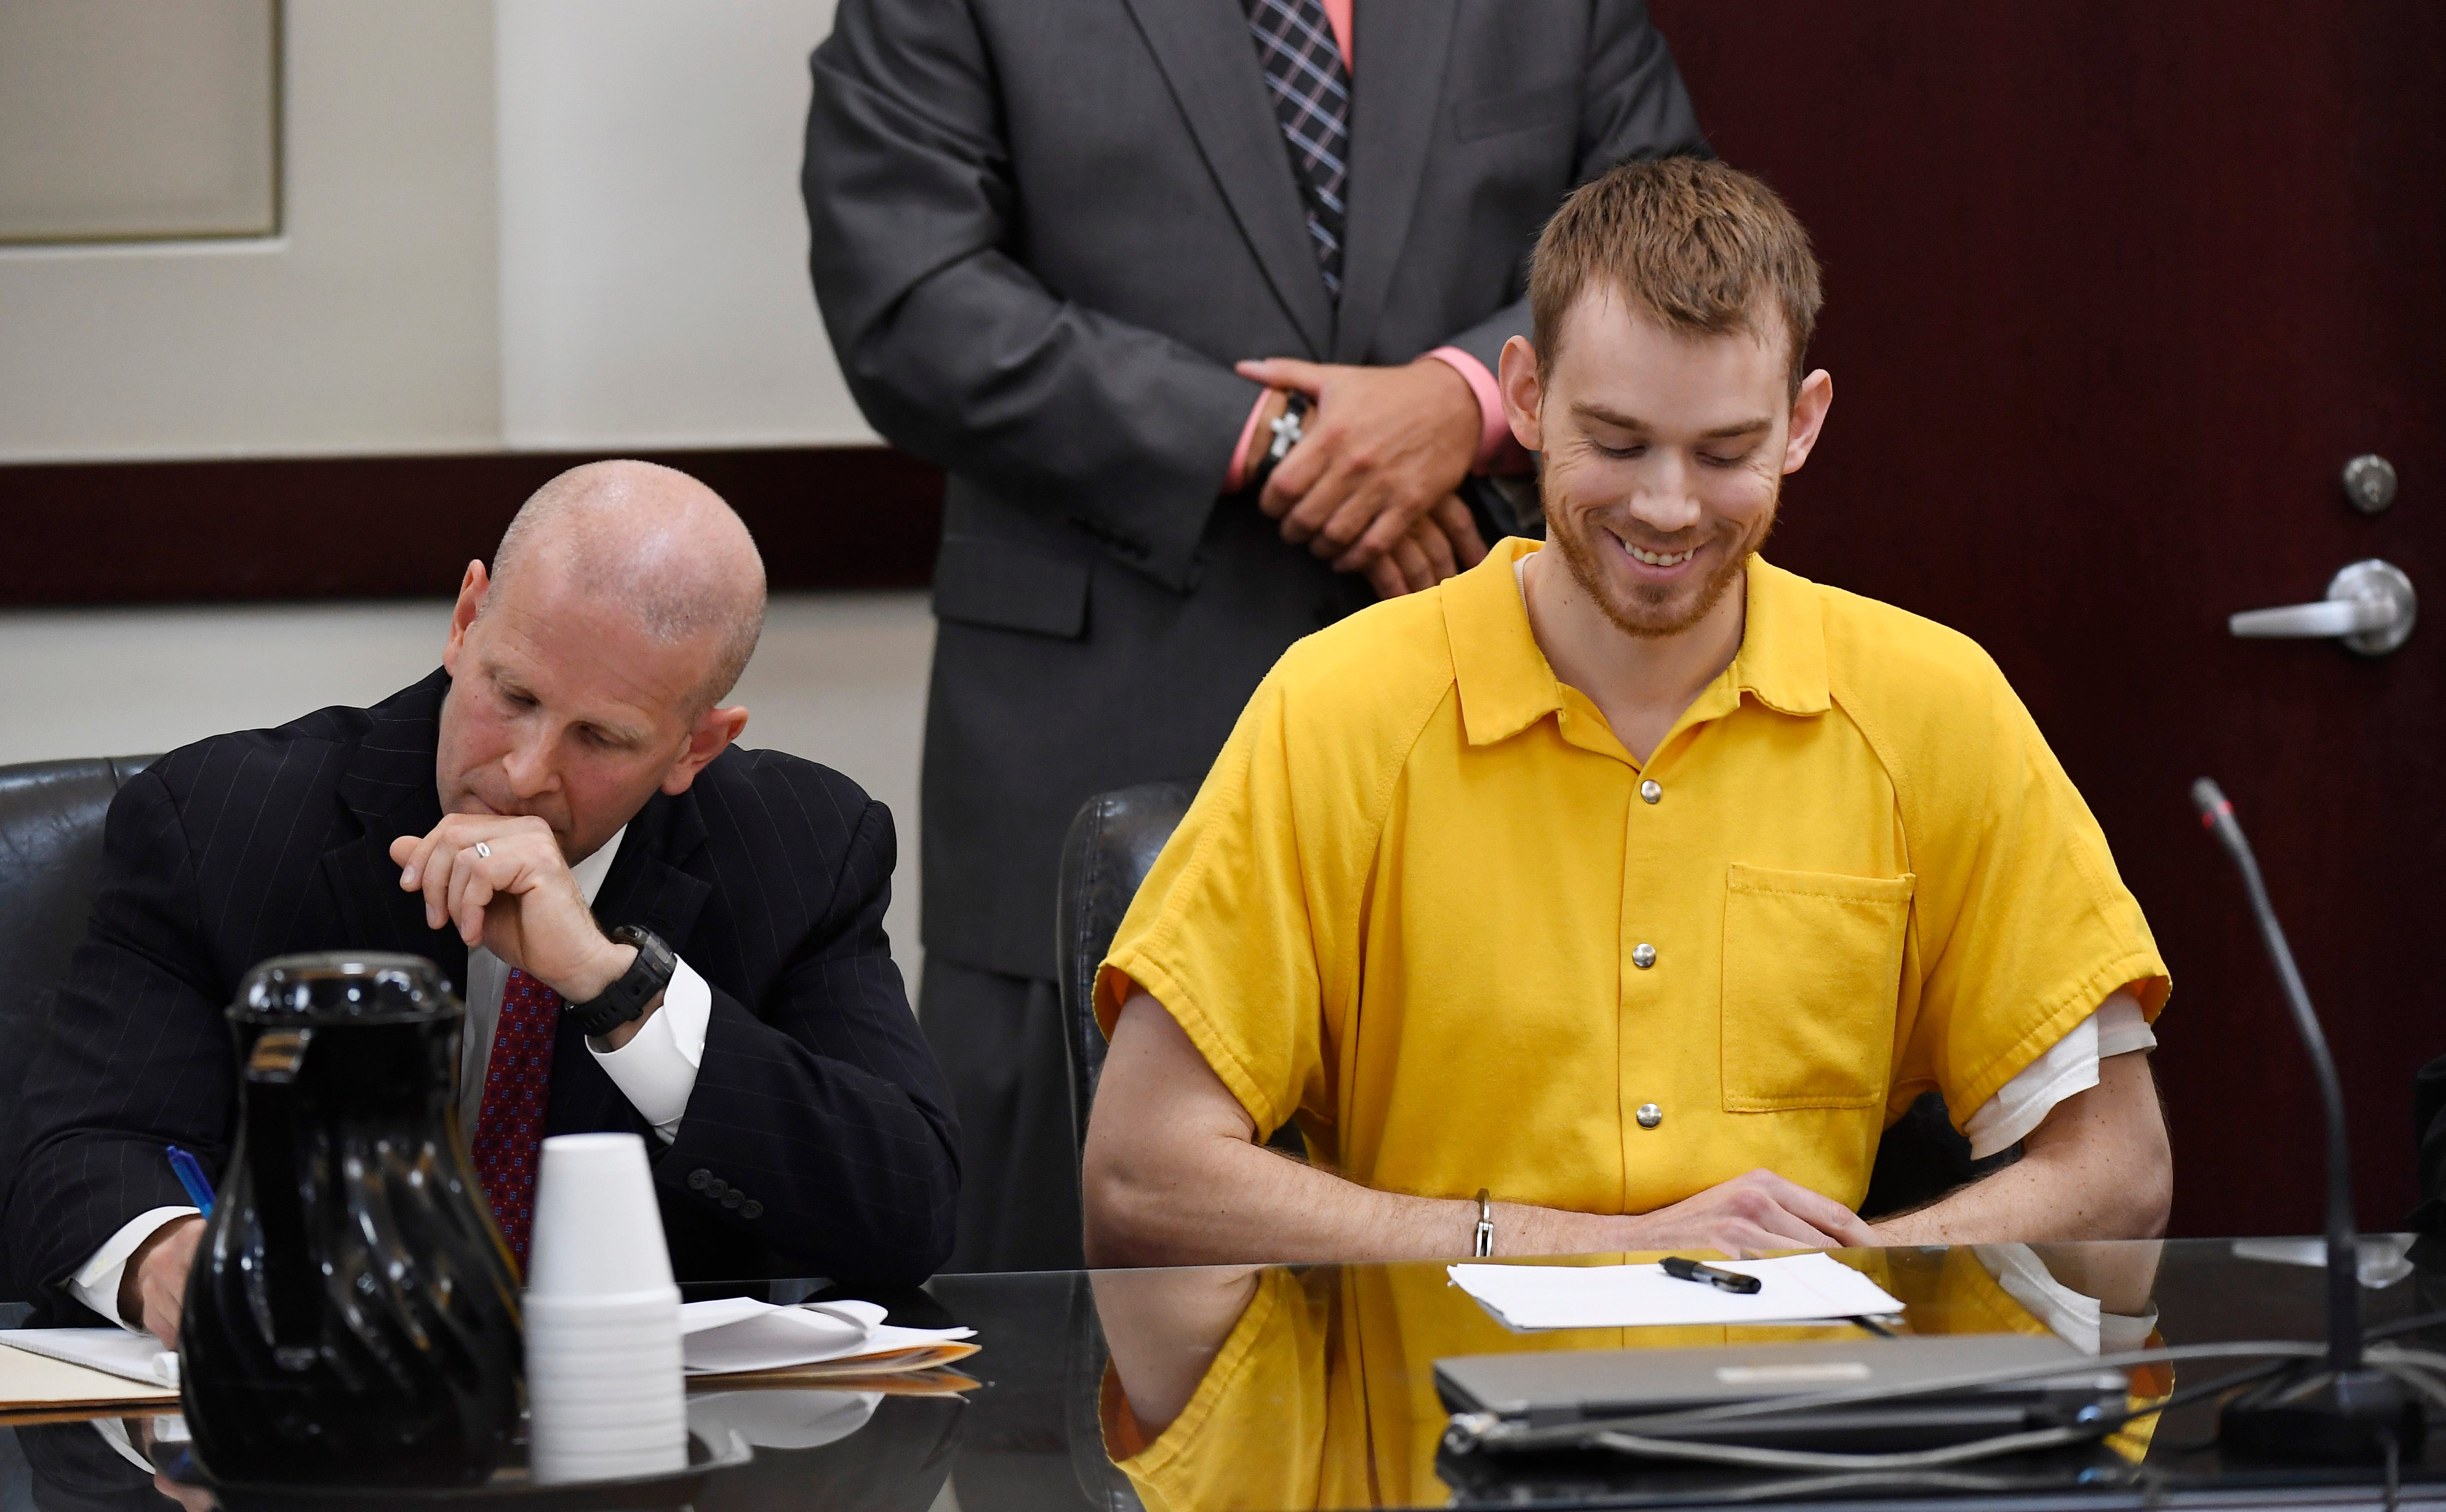 Waffle House shooting suspect Travis Reinking laughs when the judge asks a question during a hearing on his mental health Aug. 22, 2018.